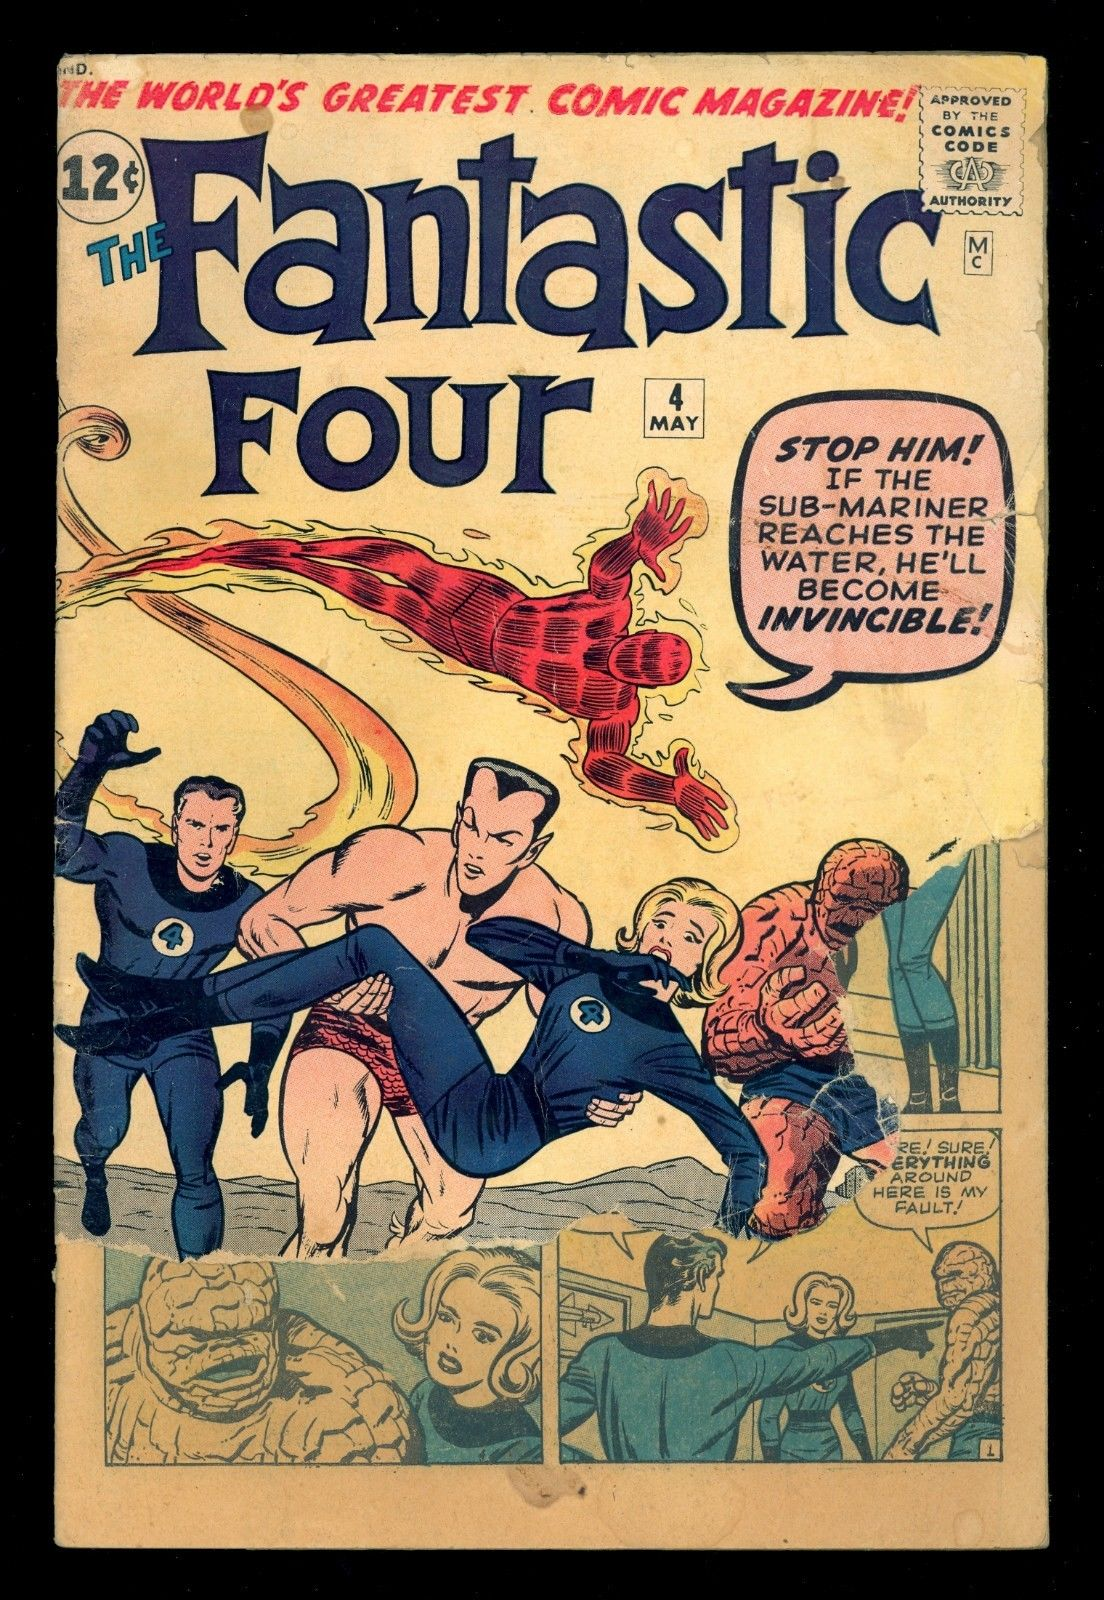 FANTASTIC FOUR #4 MARVEL 1962 1st SILVER AGE SUB-MARINER LEE-KIRBY 1.0 FR READER